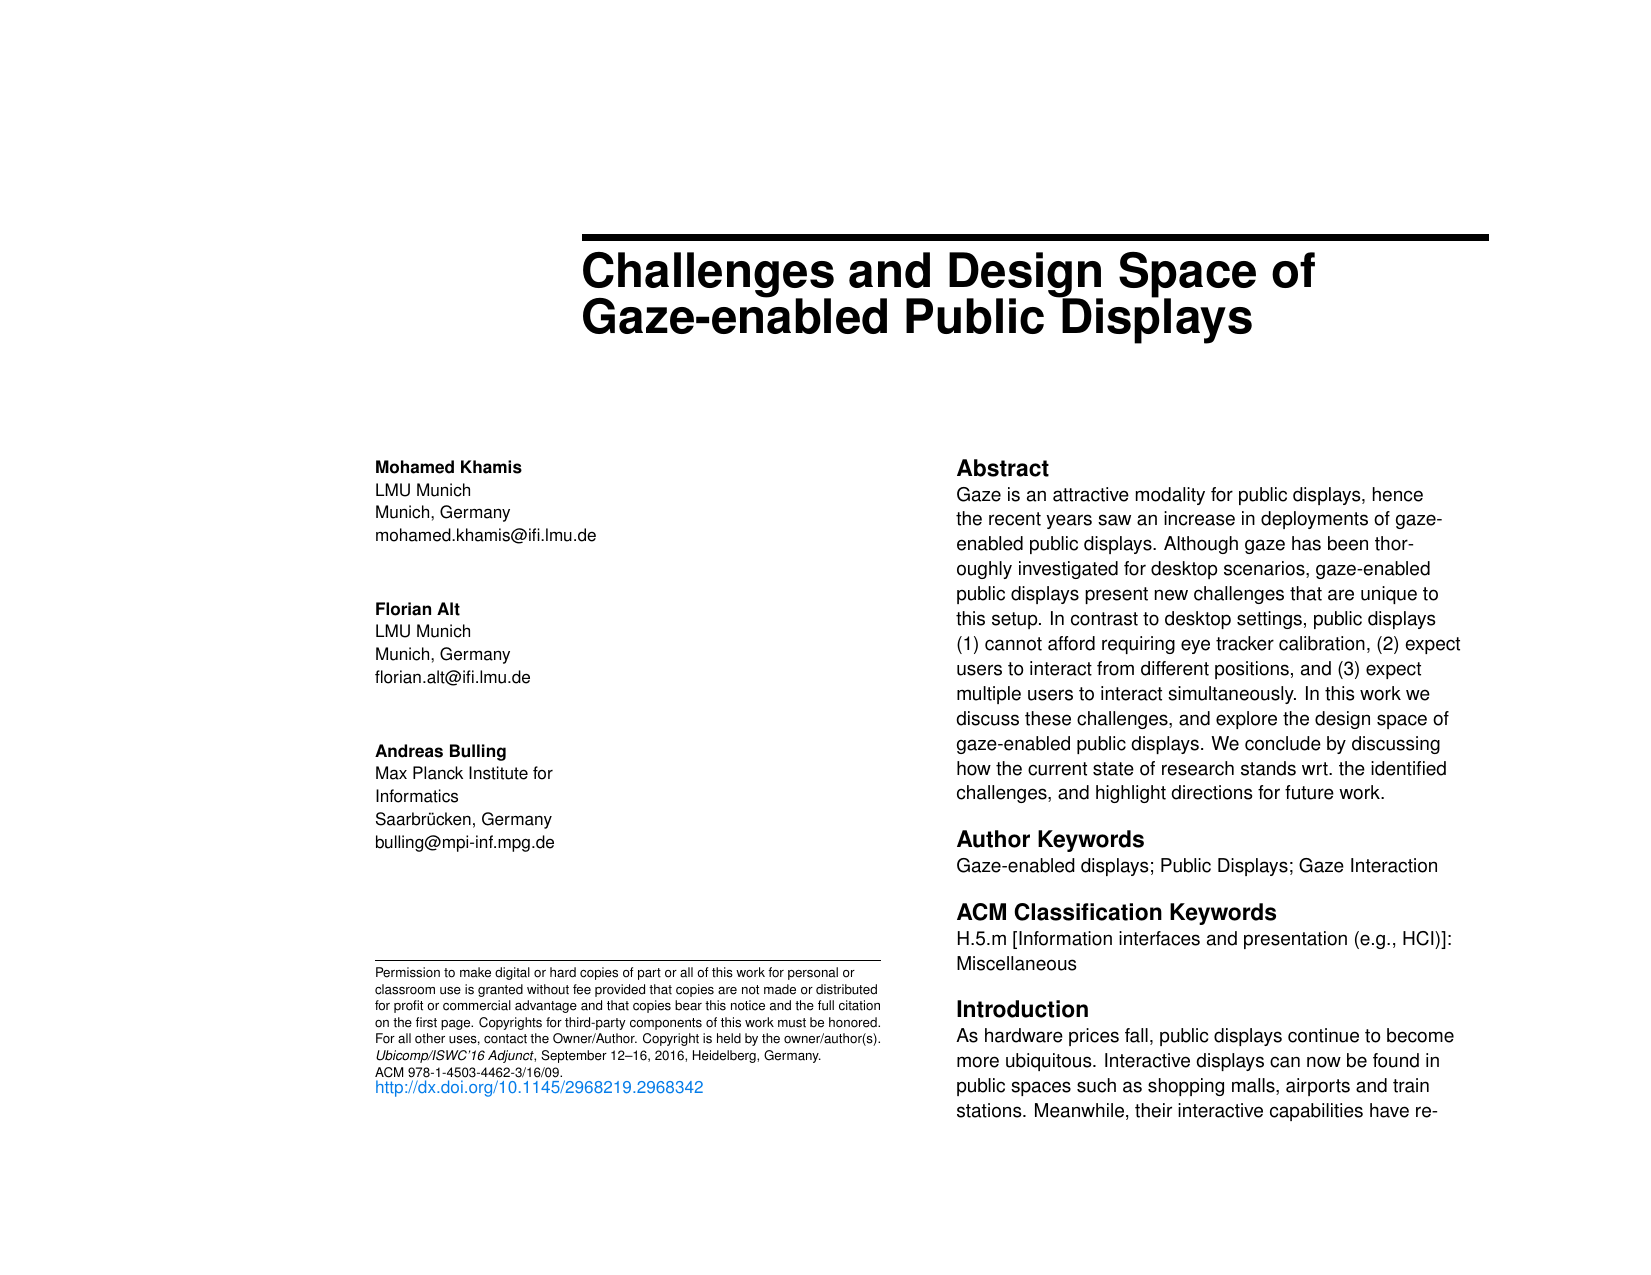 Challenges and Design Space of Gaze-enabled Public Displays